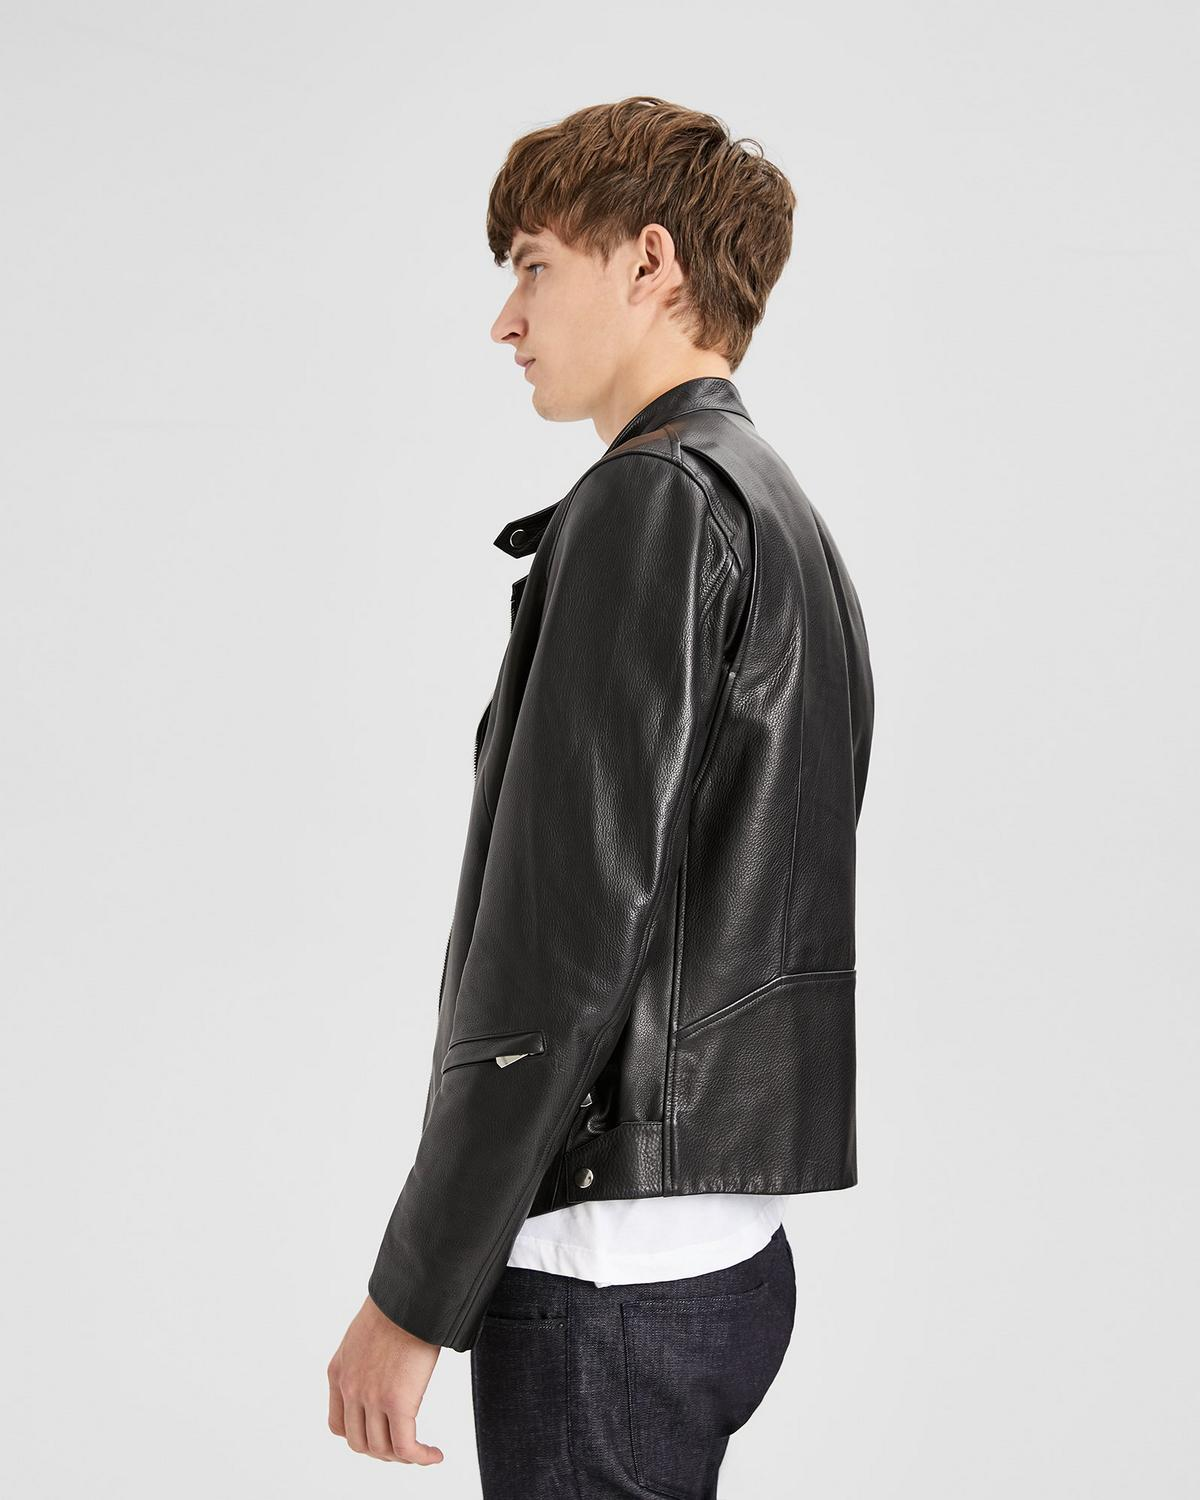 Banded DB Leather Jacket